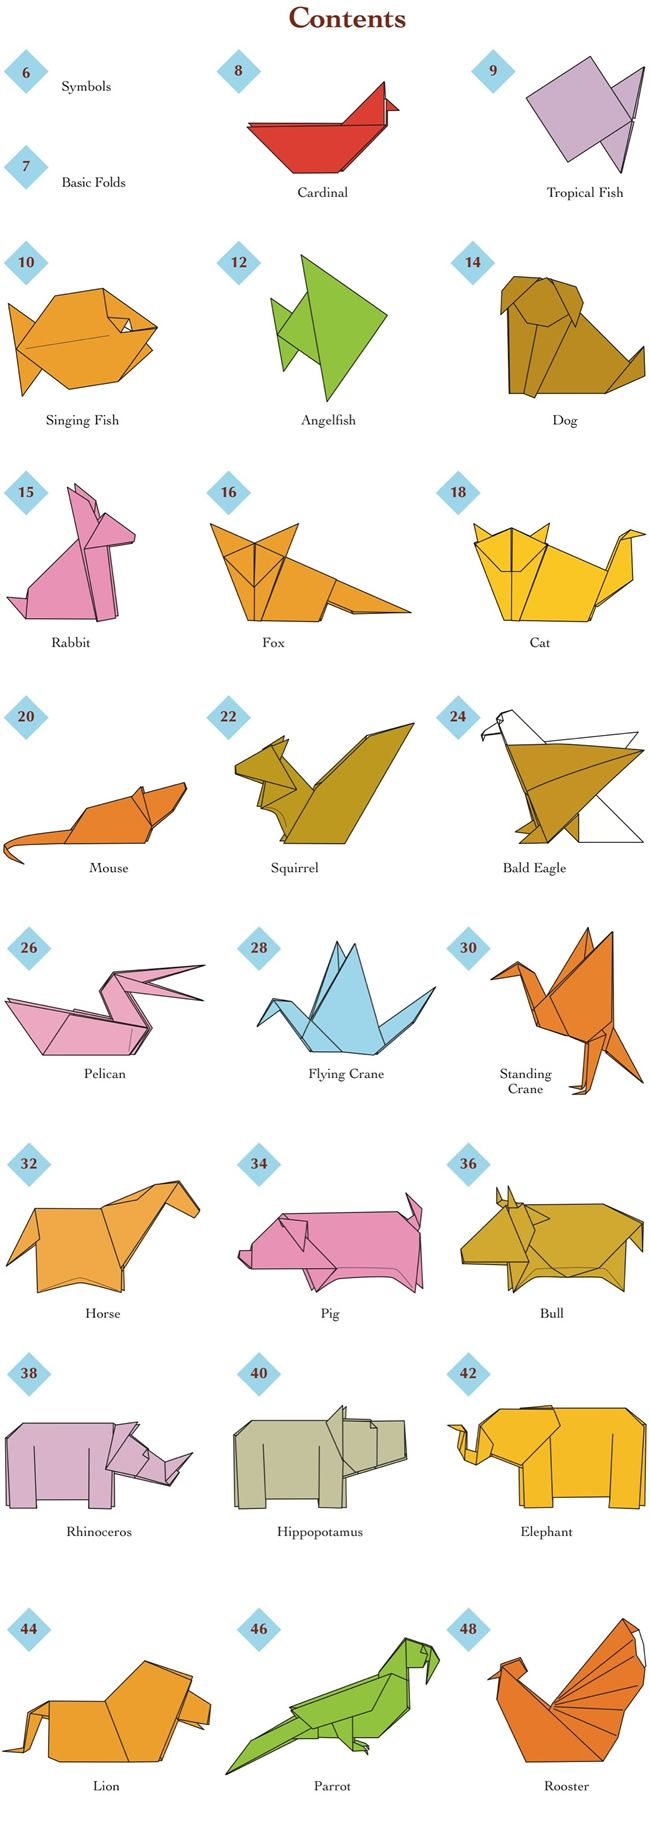 659 best origami images on pinterest paper crafts papercraft and easy origami animals page 2 of 6 contents thecheapjerseys Gallery